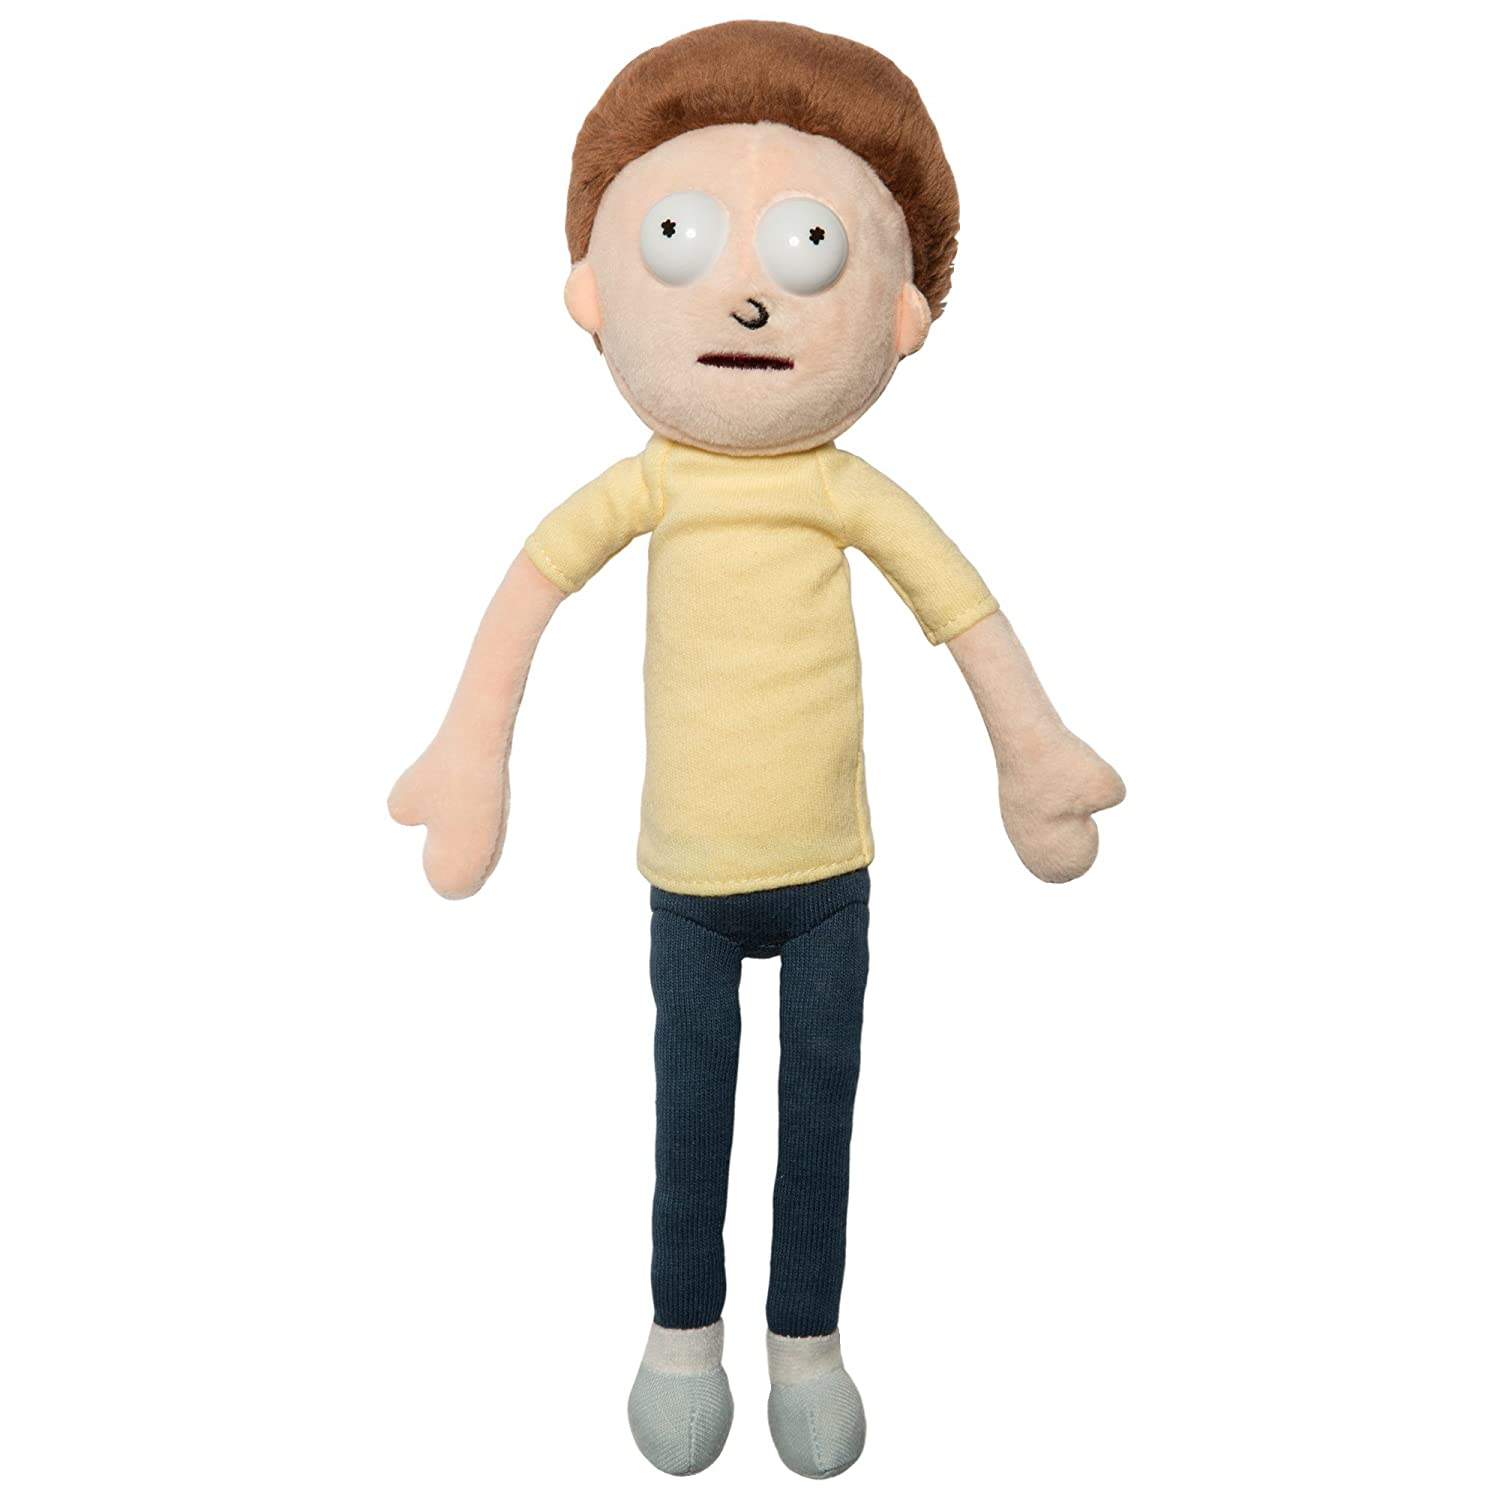 Morty Plush Stuffed Doll by JINX